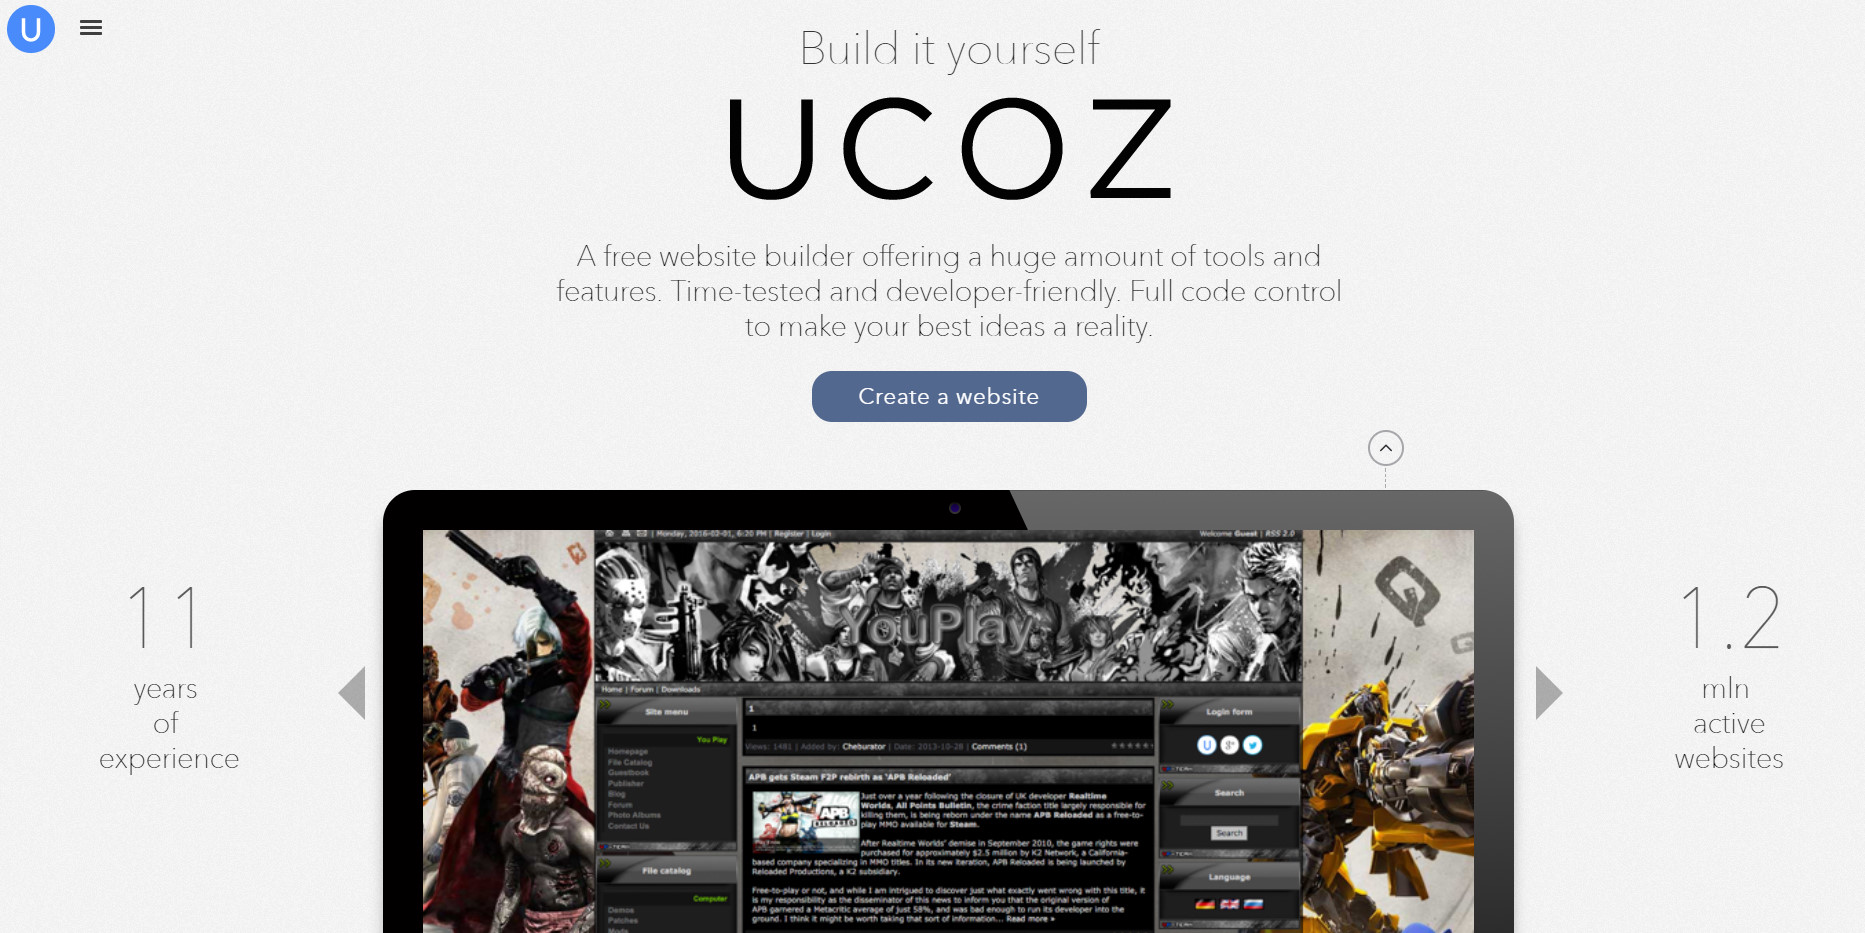 ucoz login, ucoz arrow, ucoz android